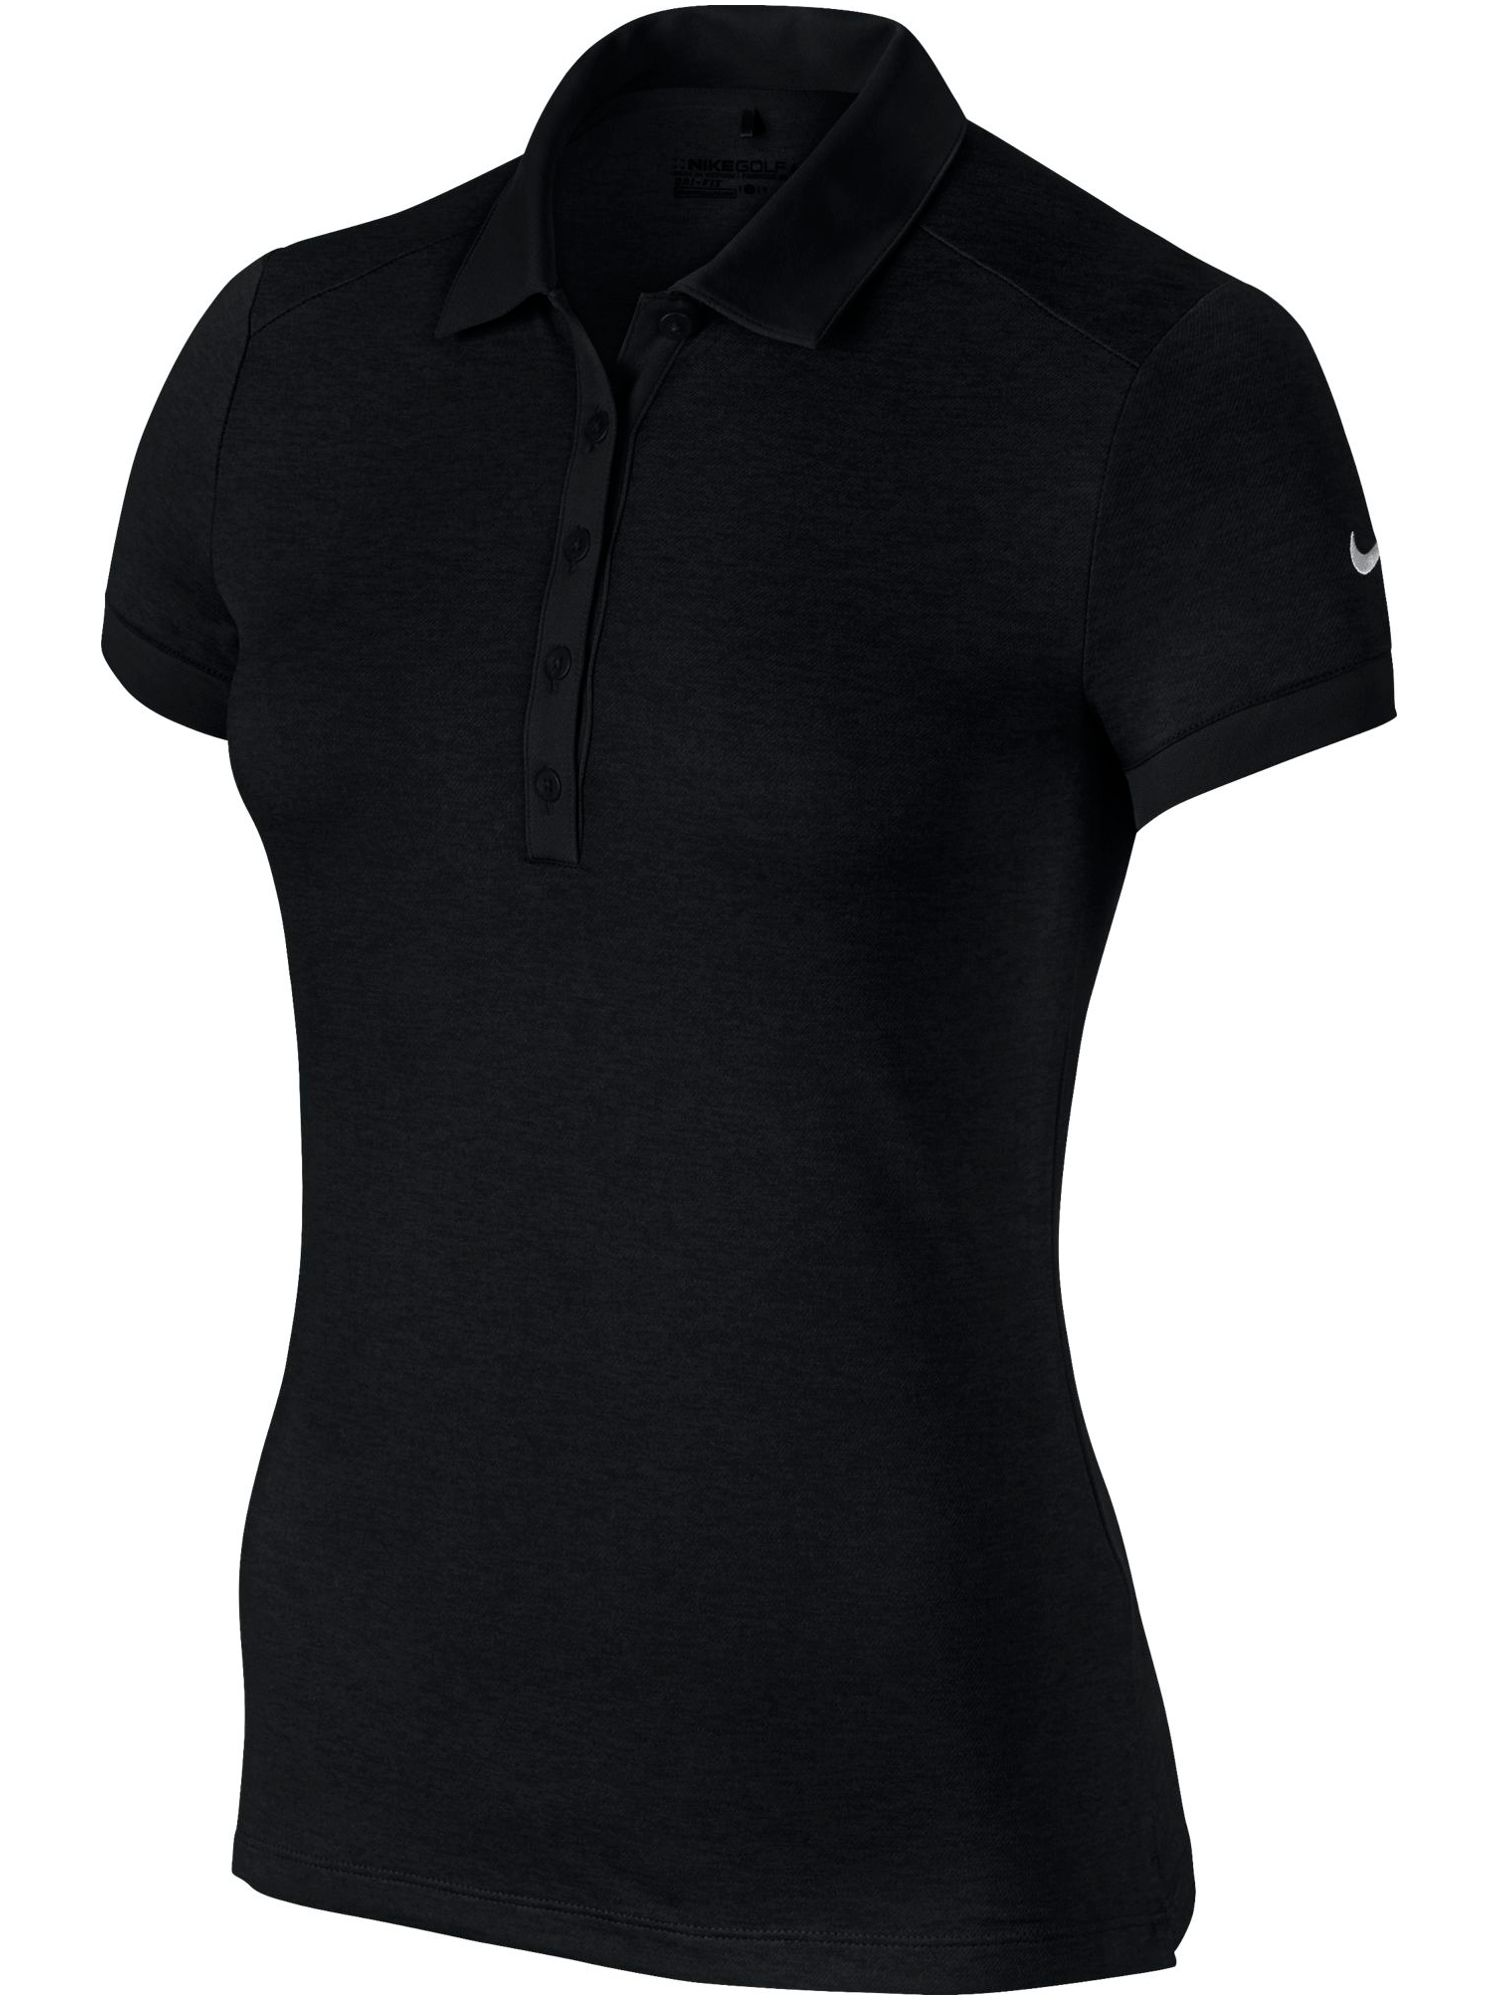 Nike Golf Icon Heather Golf Polo, Black